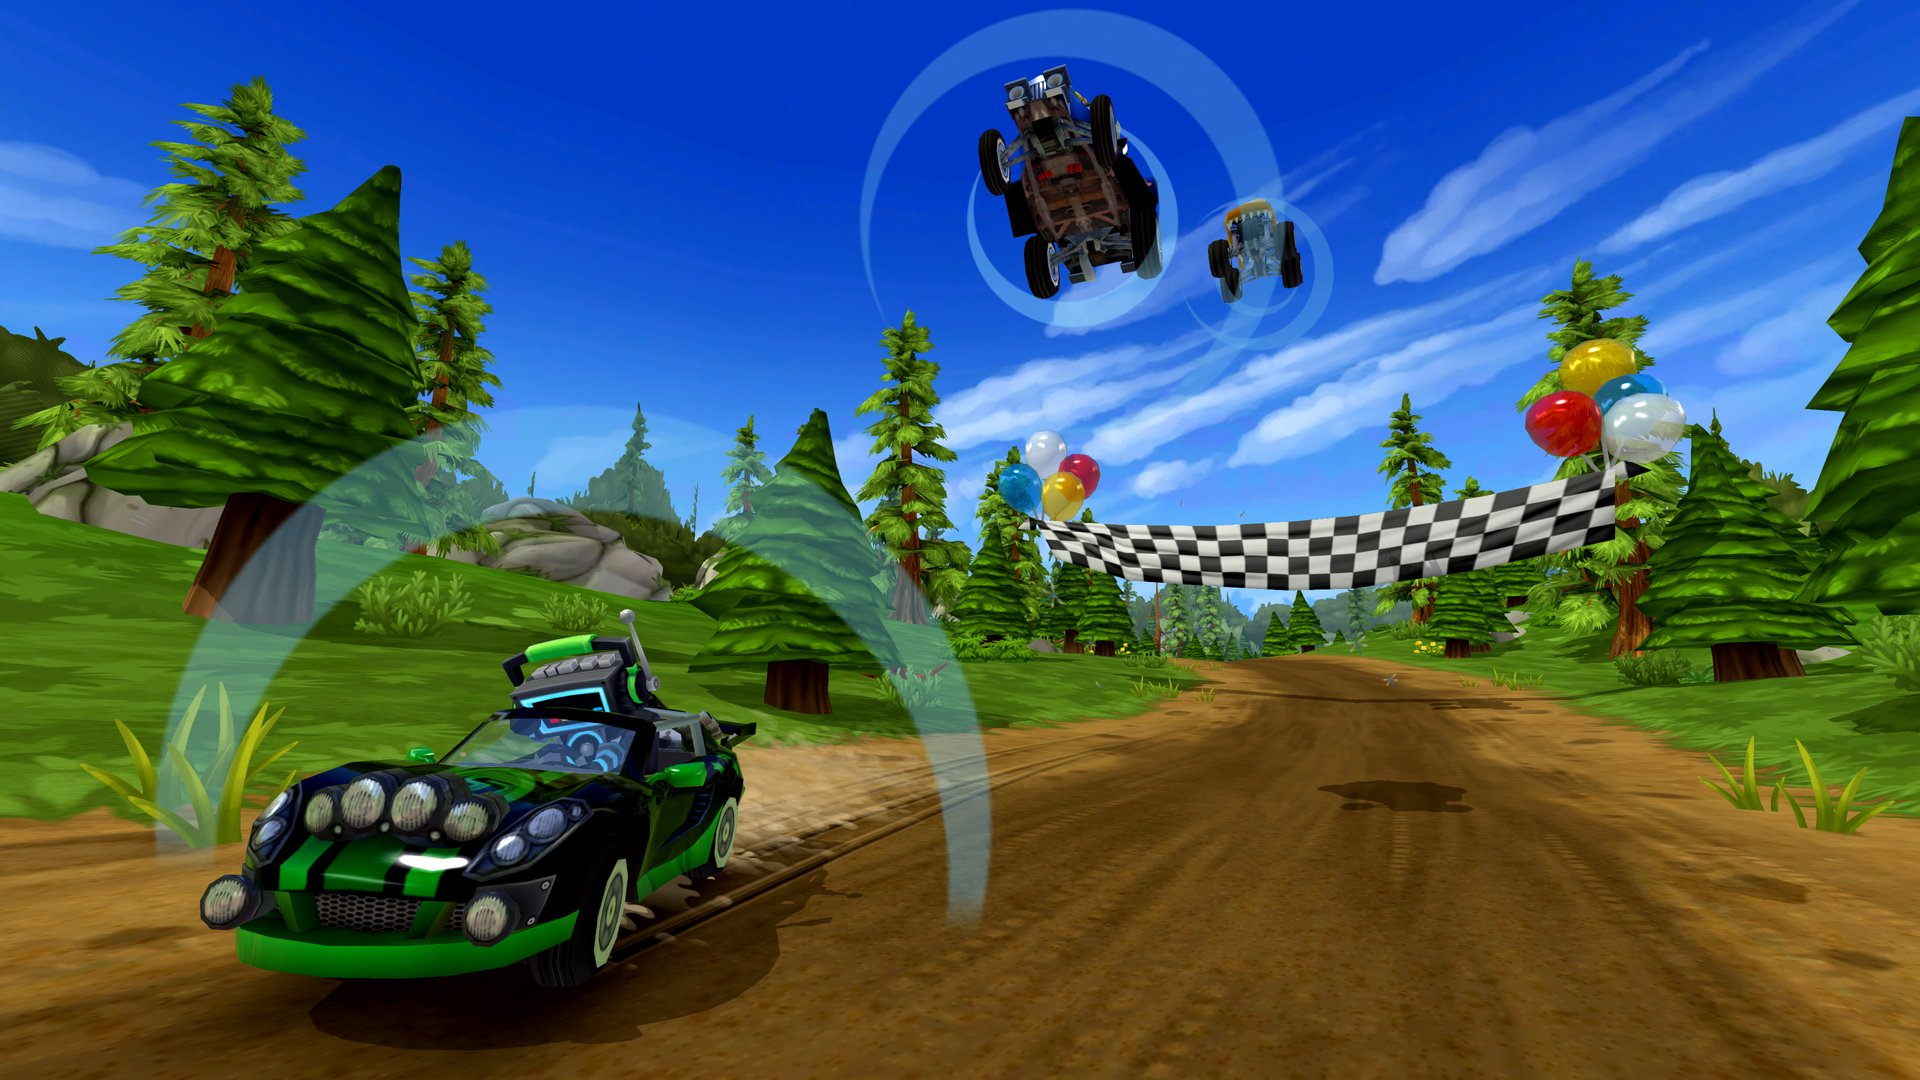 BeachBuggyRacing2_Castle_01_2018-03-15.jpg